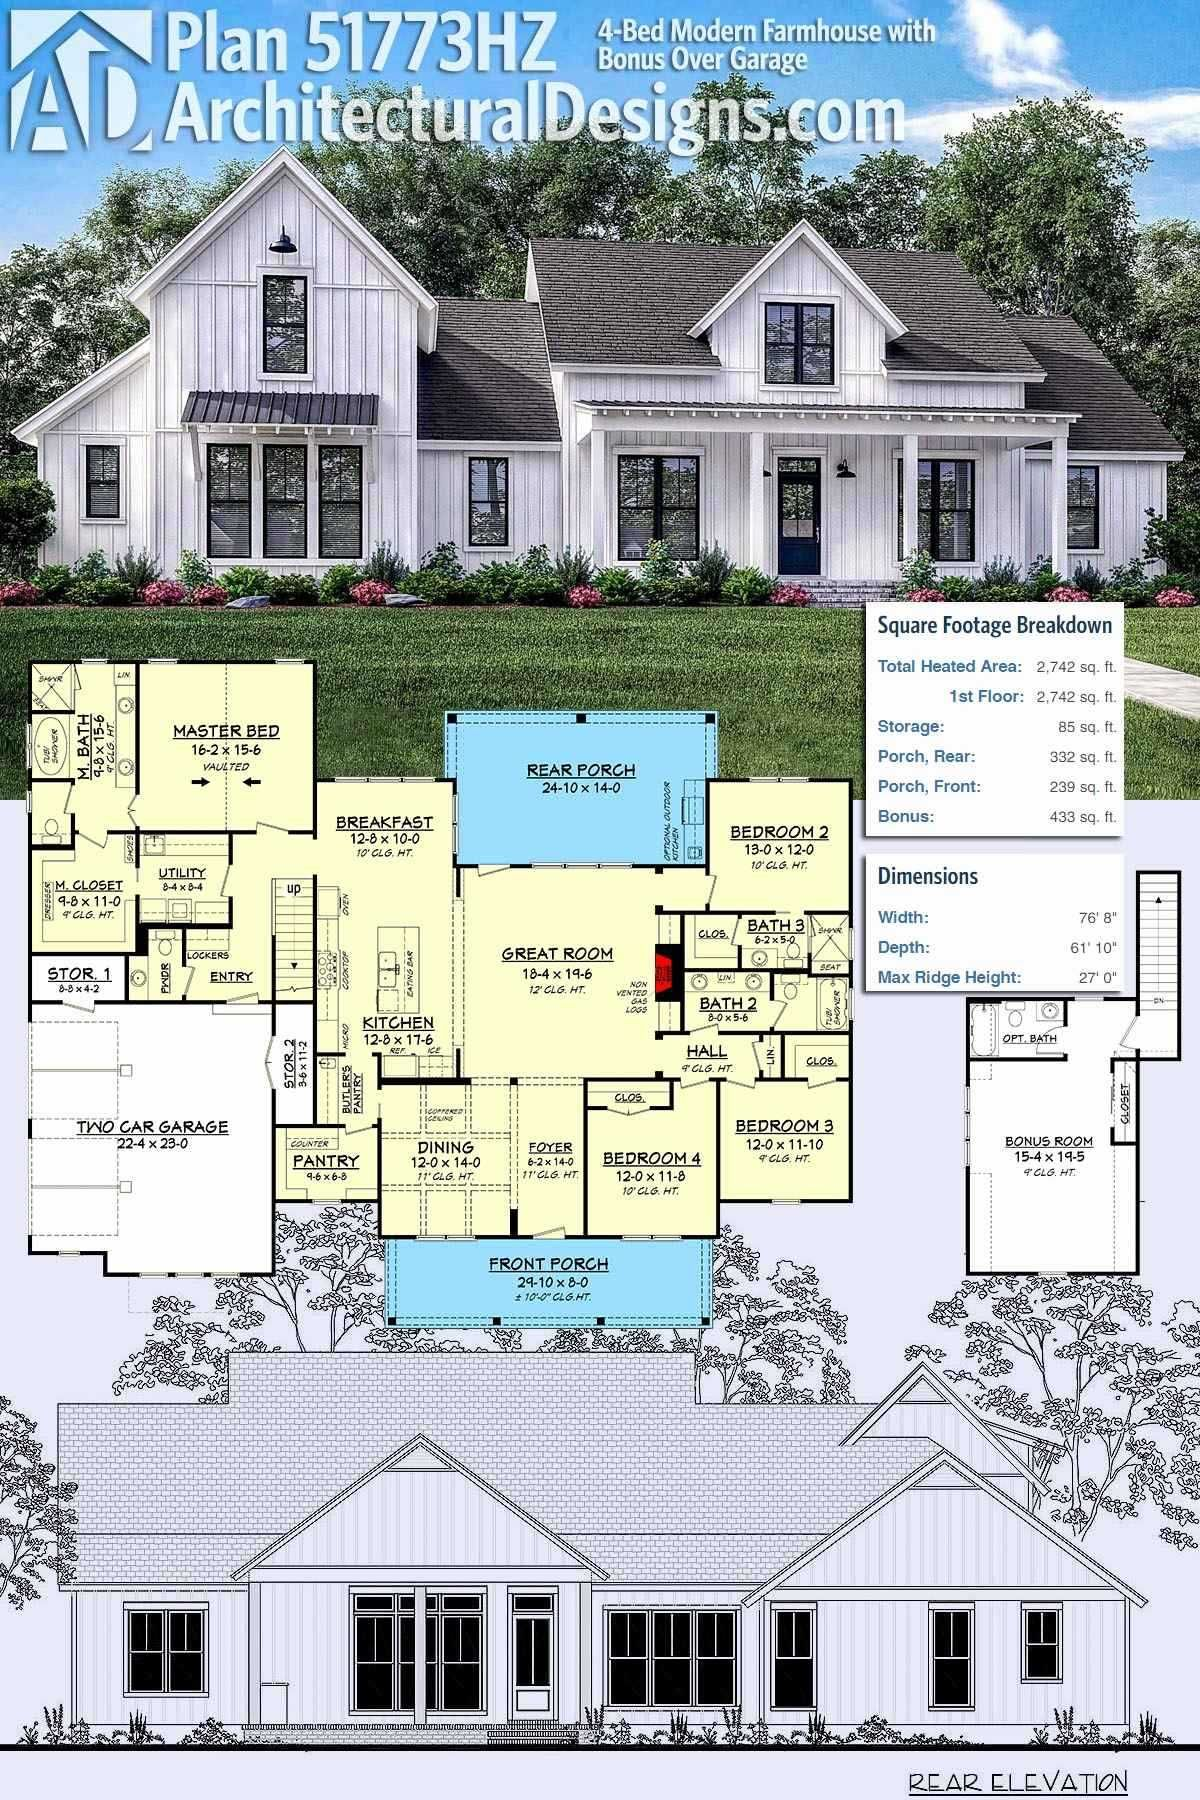 Single story small modern farmhouse plans awesome modern